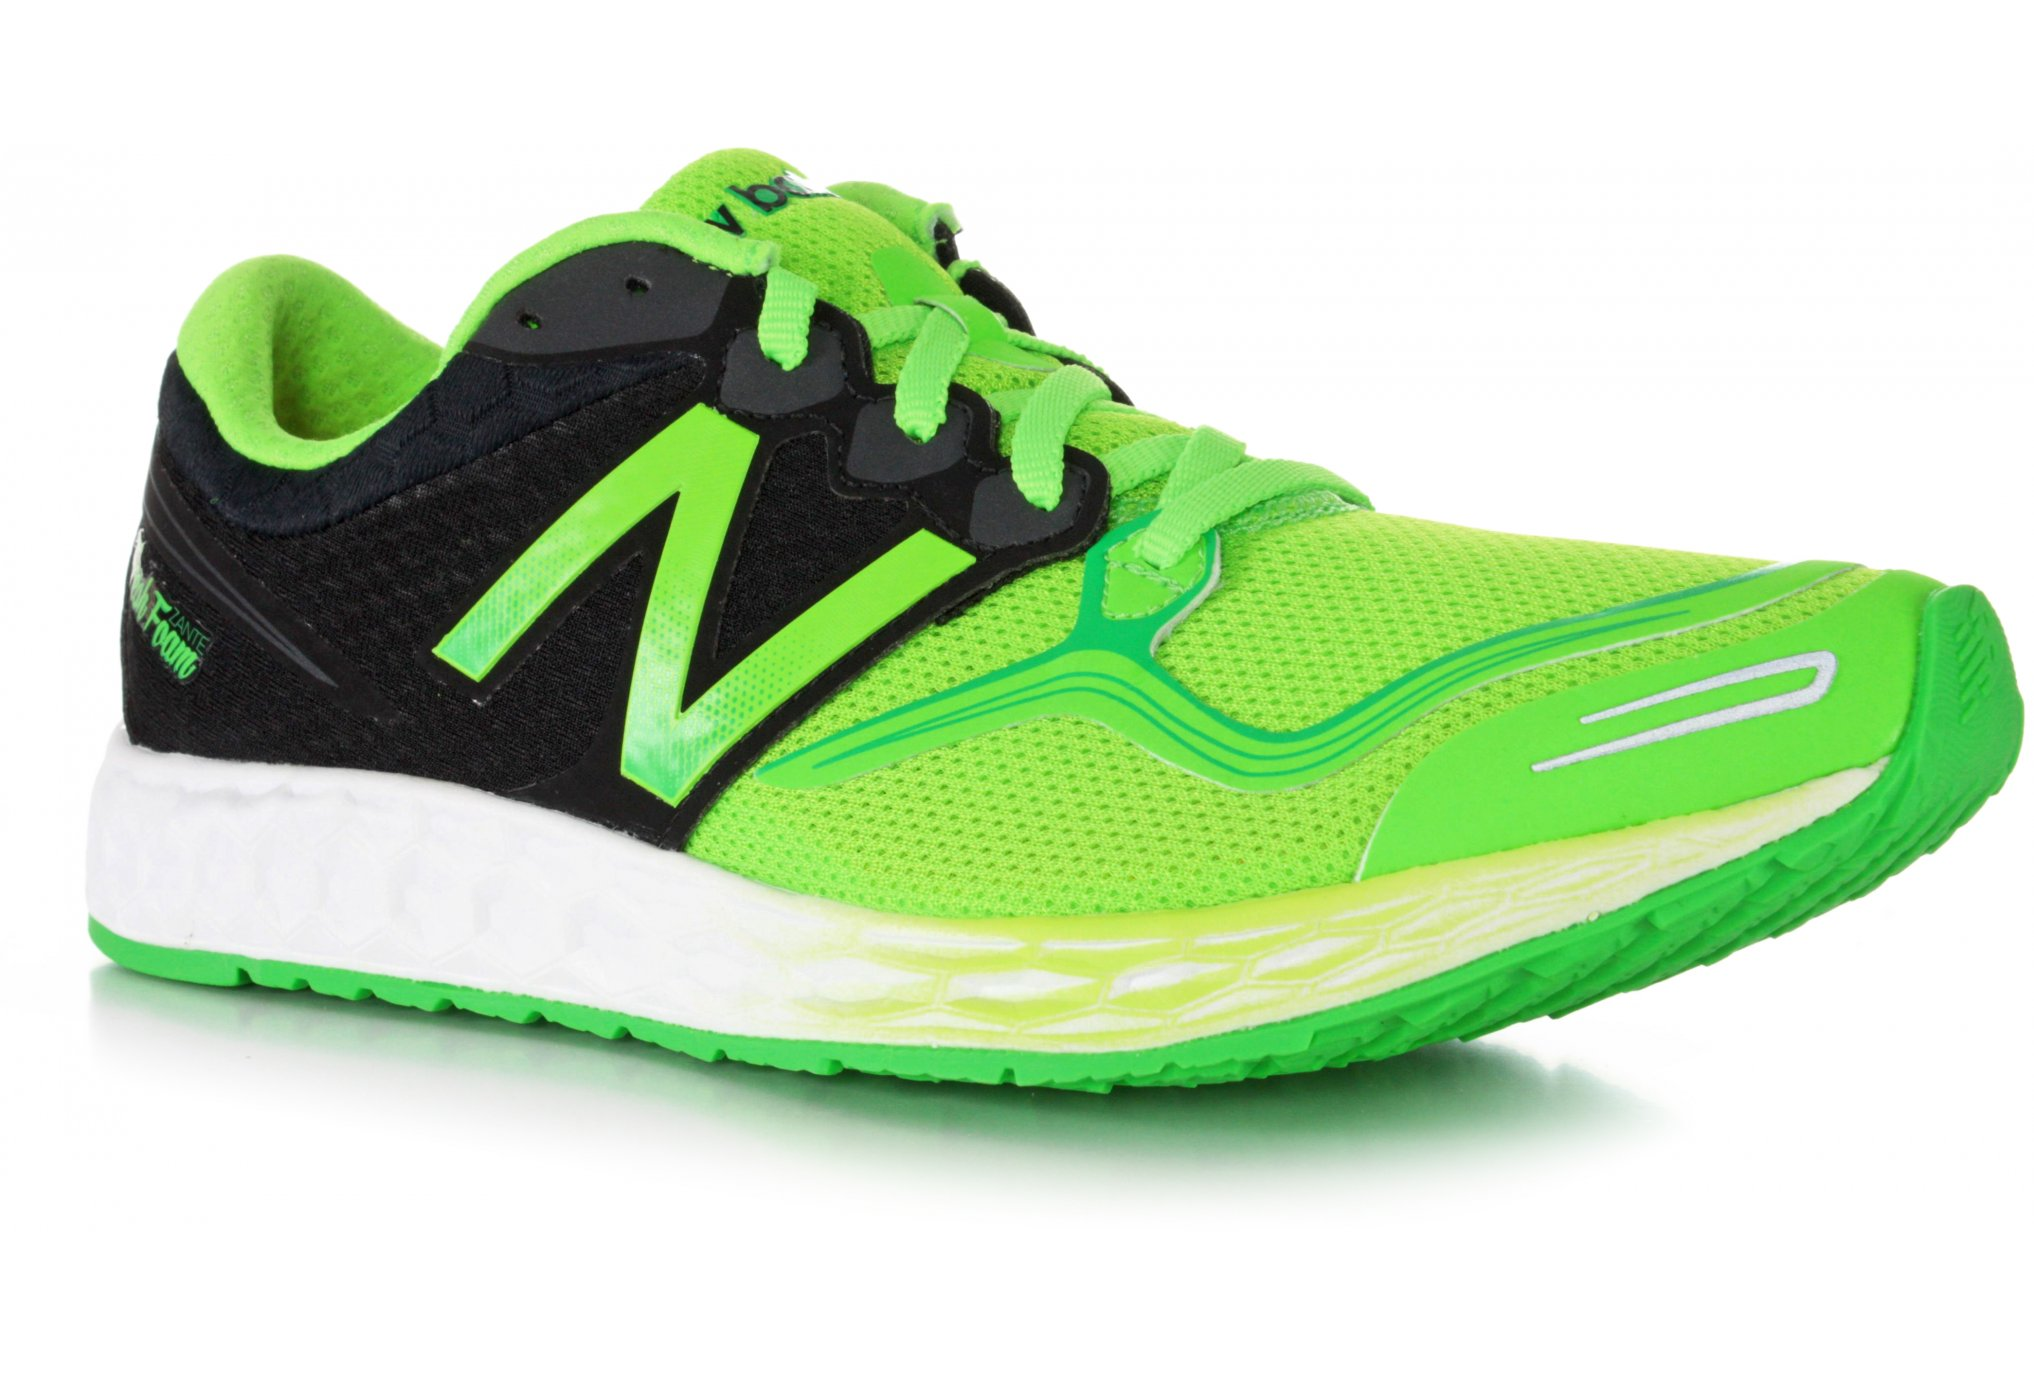 New Balance 1980 Fresh Foam ZANTE - D déstockage running